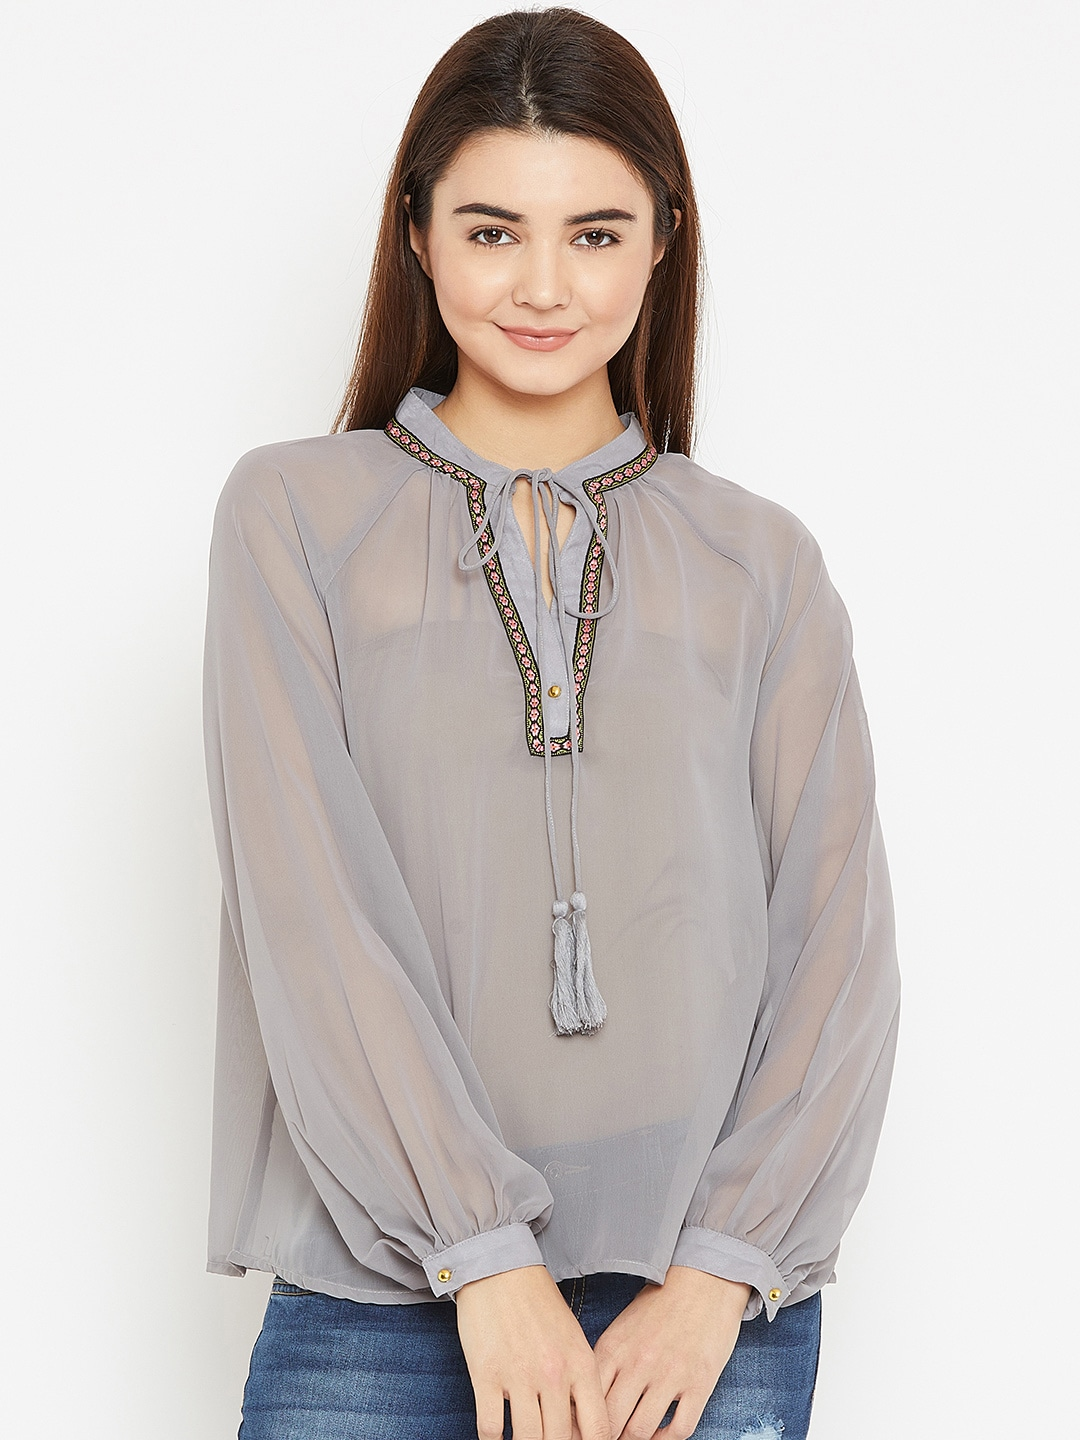 3395ab44a5cf86 Ladies Tops - Buy Tops & T-shirts for Women Online | Myntra